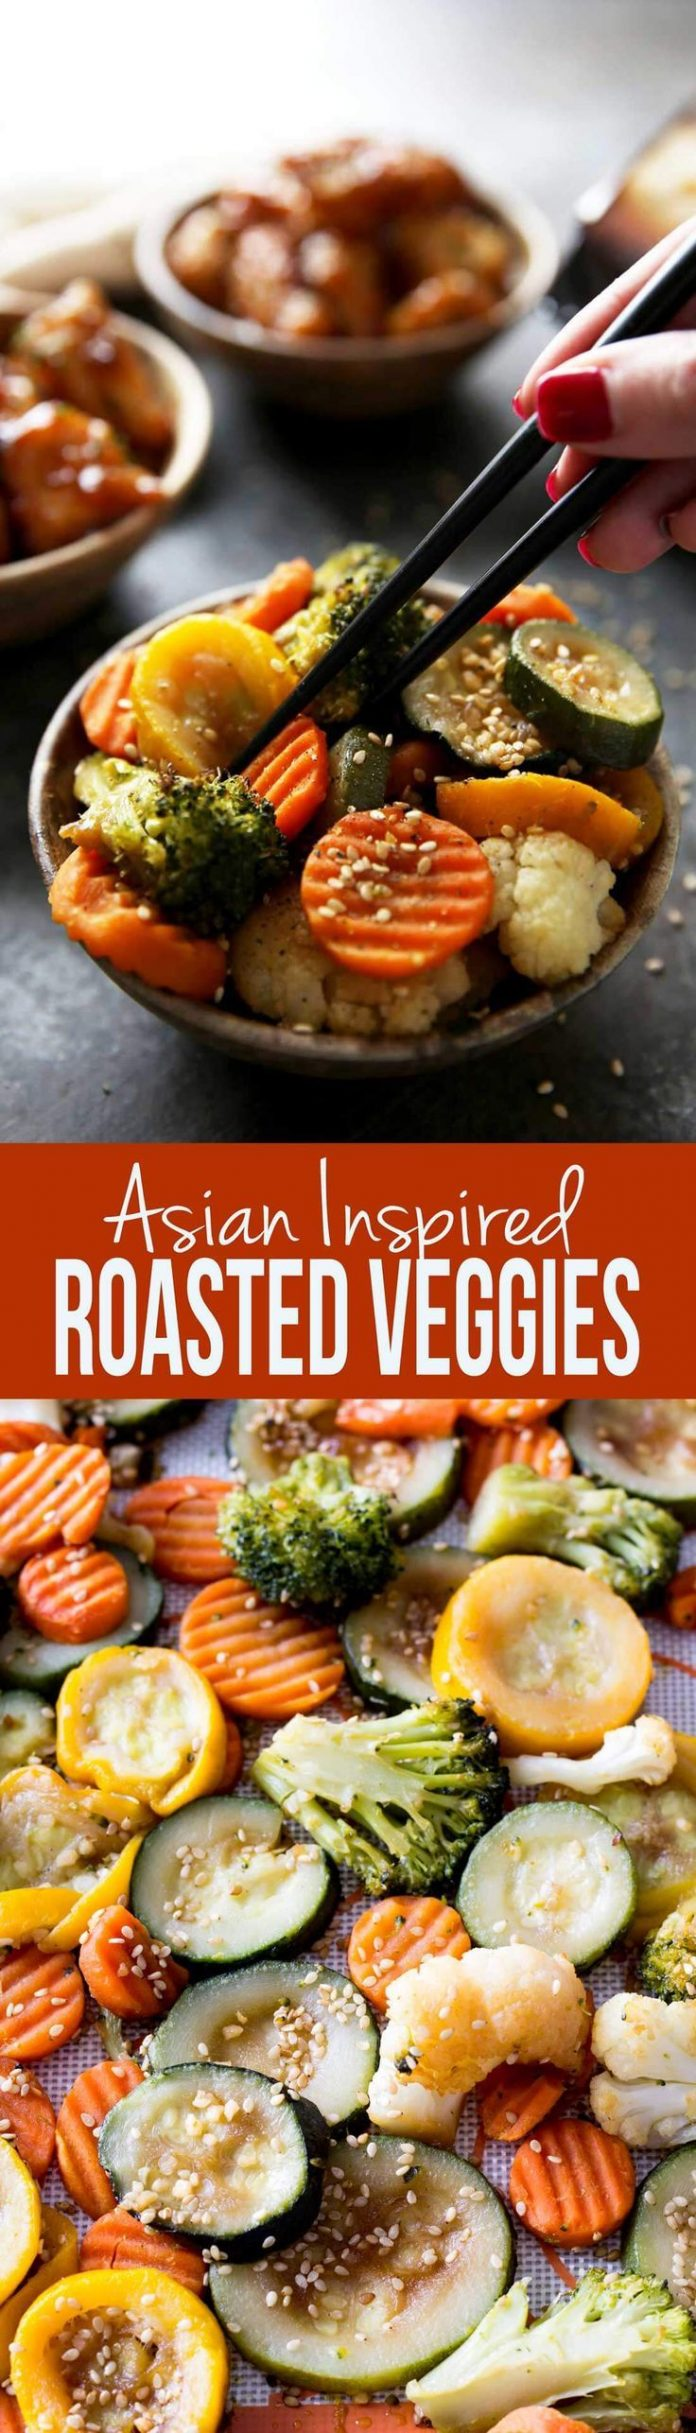 Healthy Recipes : Easy asian inspired veggies roasted in ...